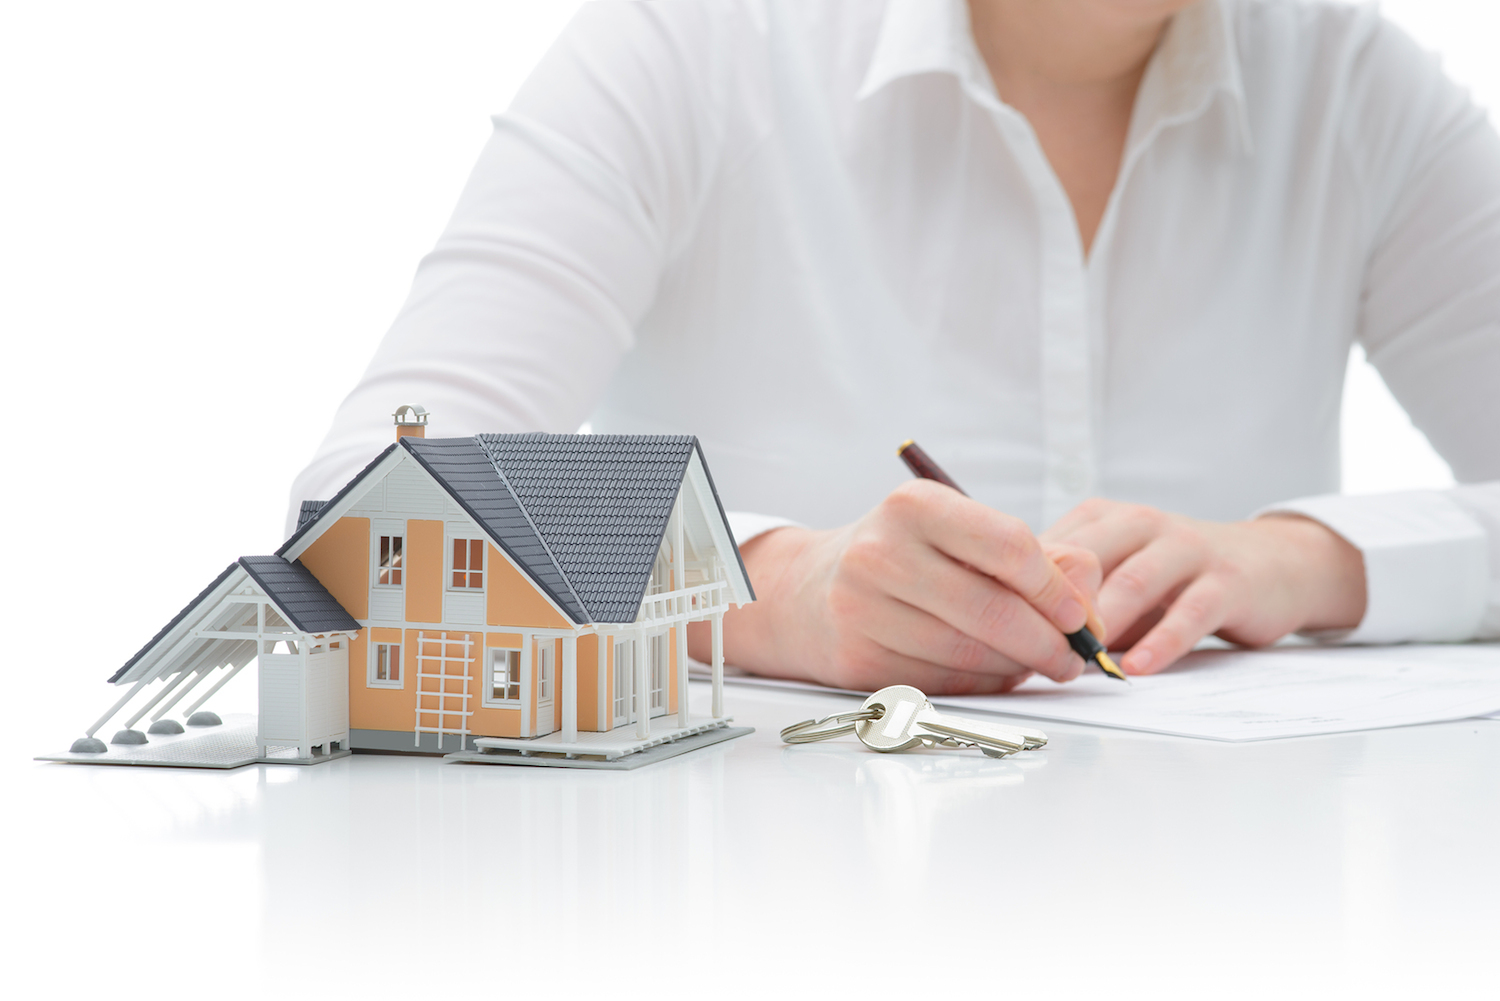 Home Buying Contingency Removal Under CA Purchase Contract